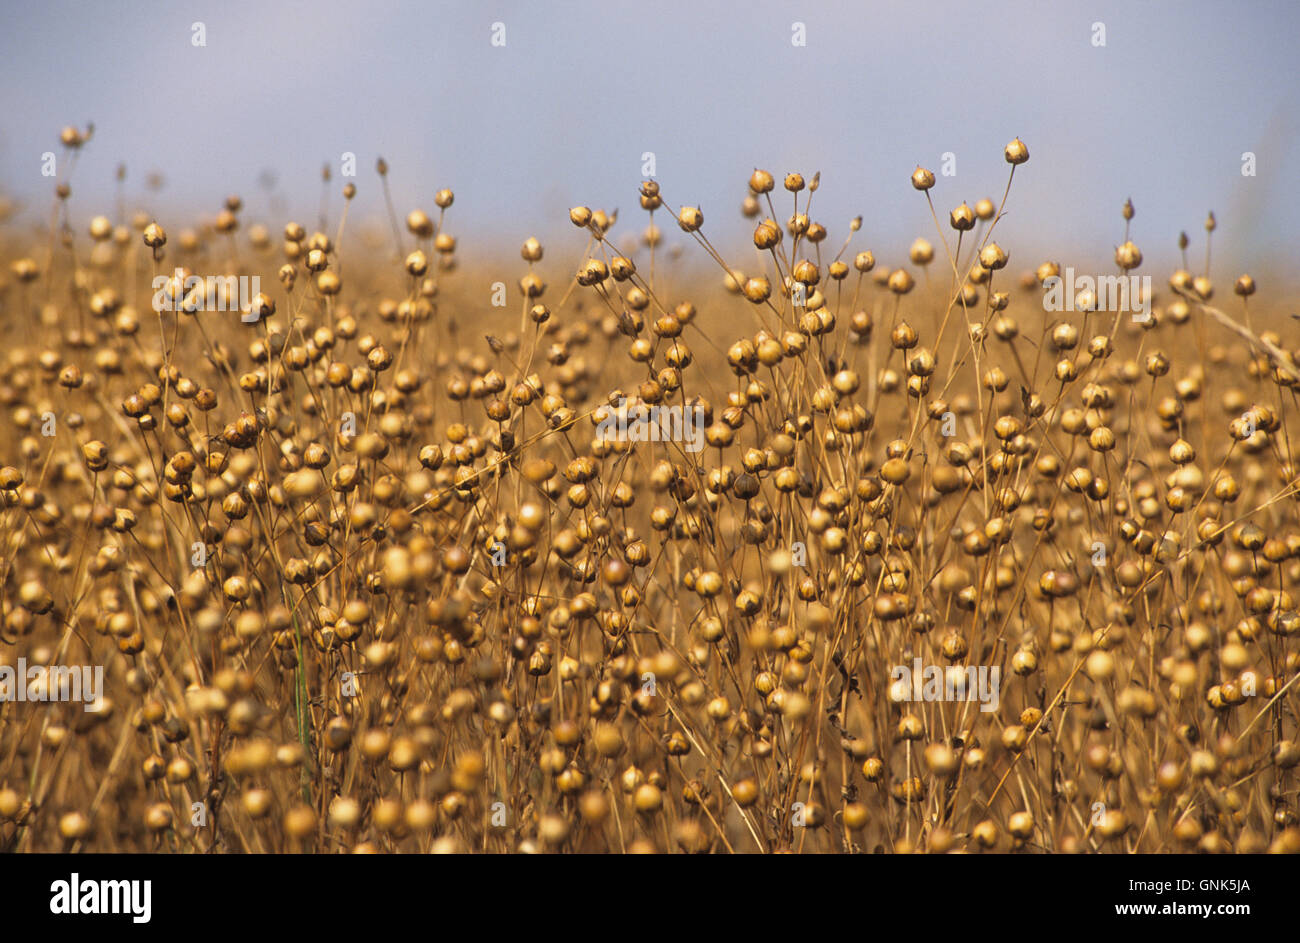 Germany, field with flax plant used as linseed - Stock Image